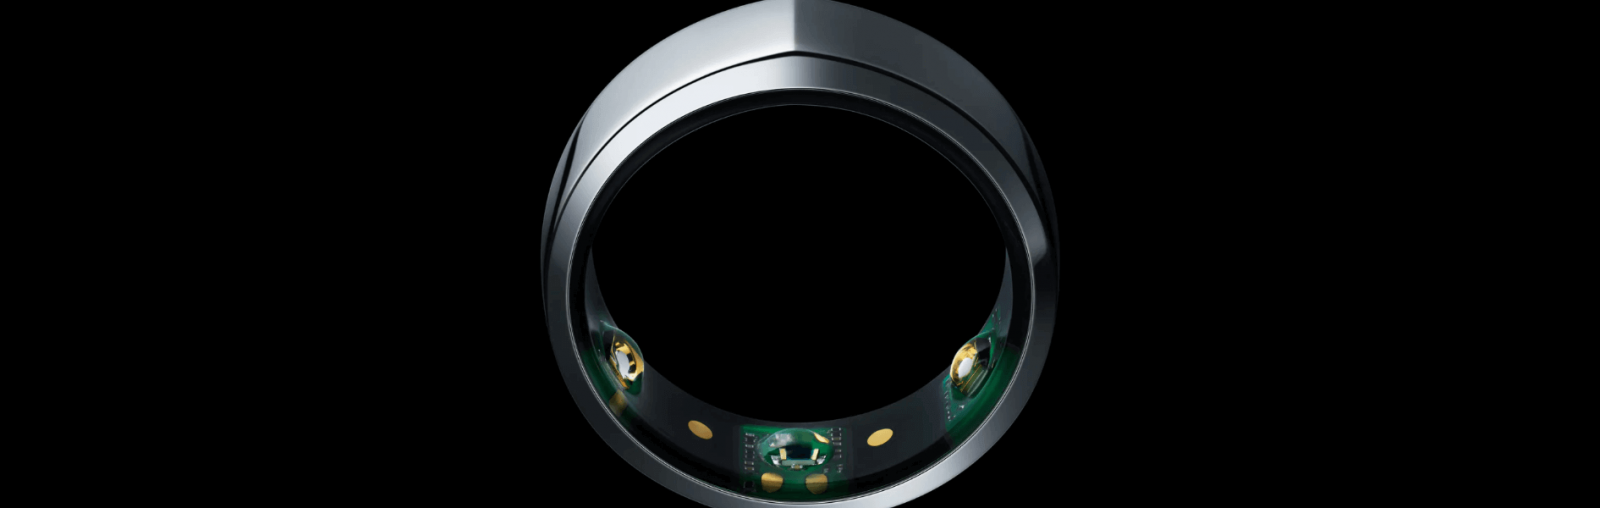 Corporate Sleep Screen | Oura Ring | London Doctors Clinic